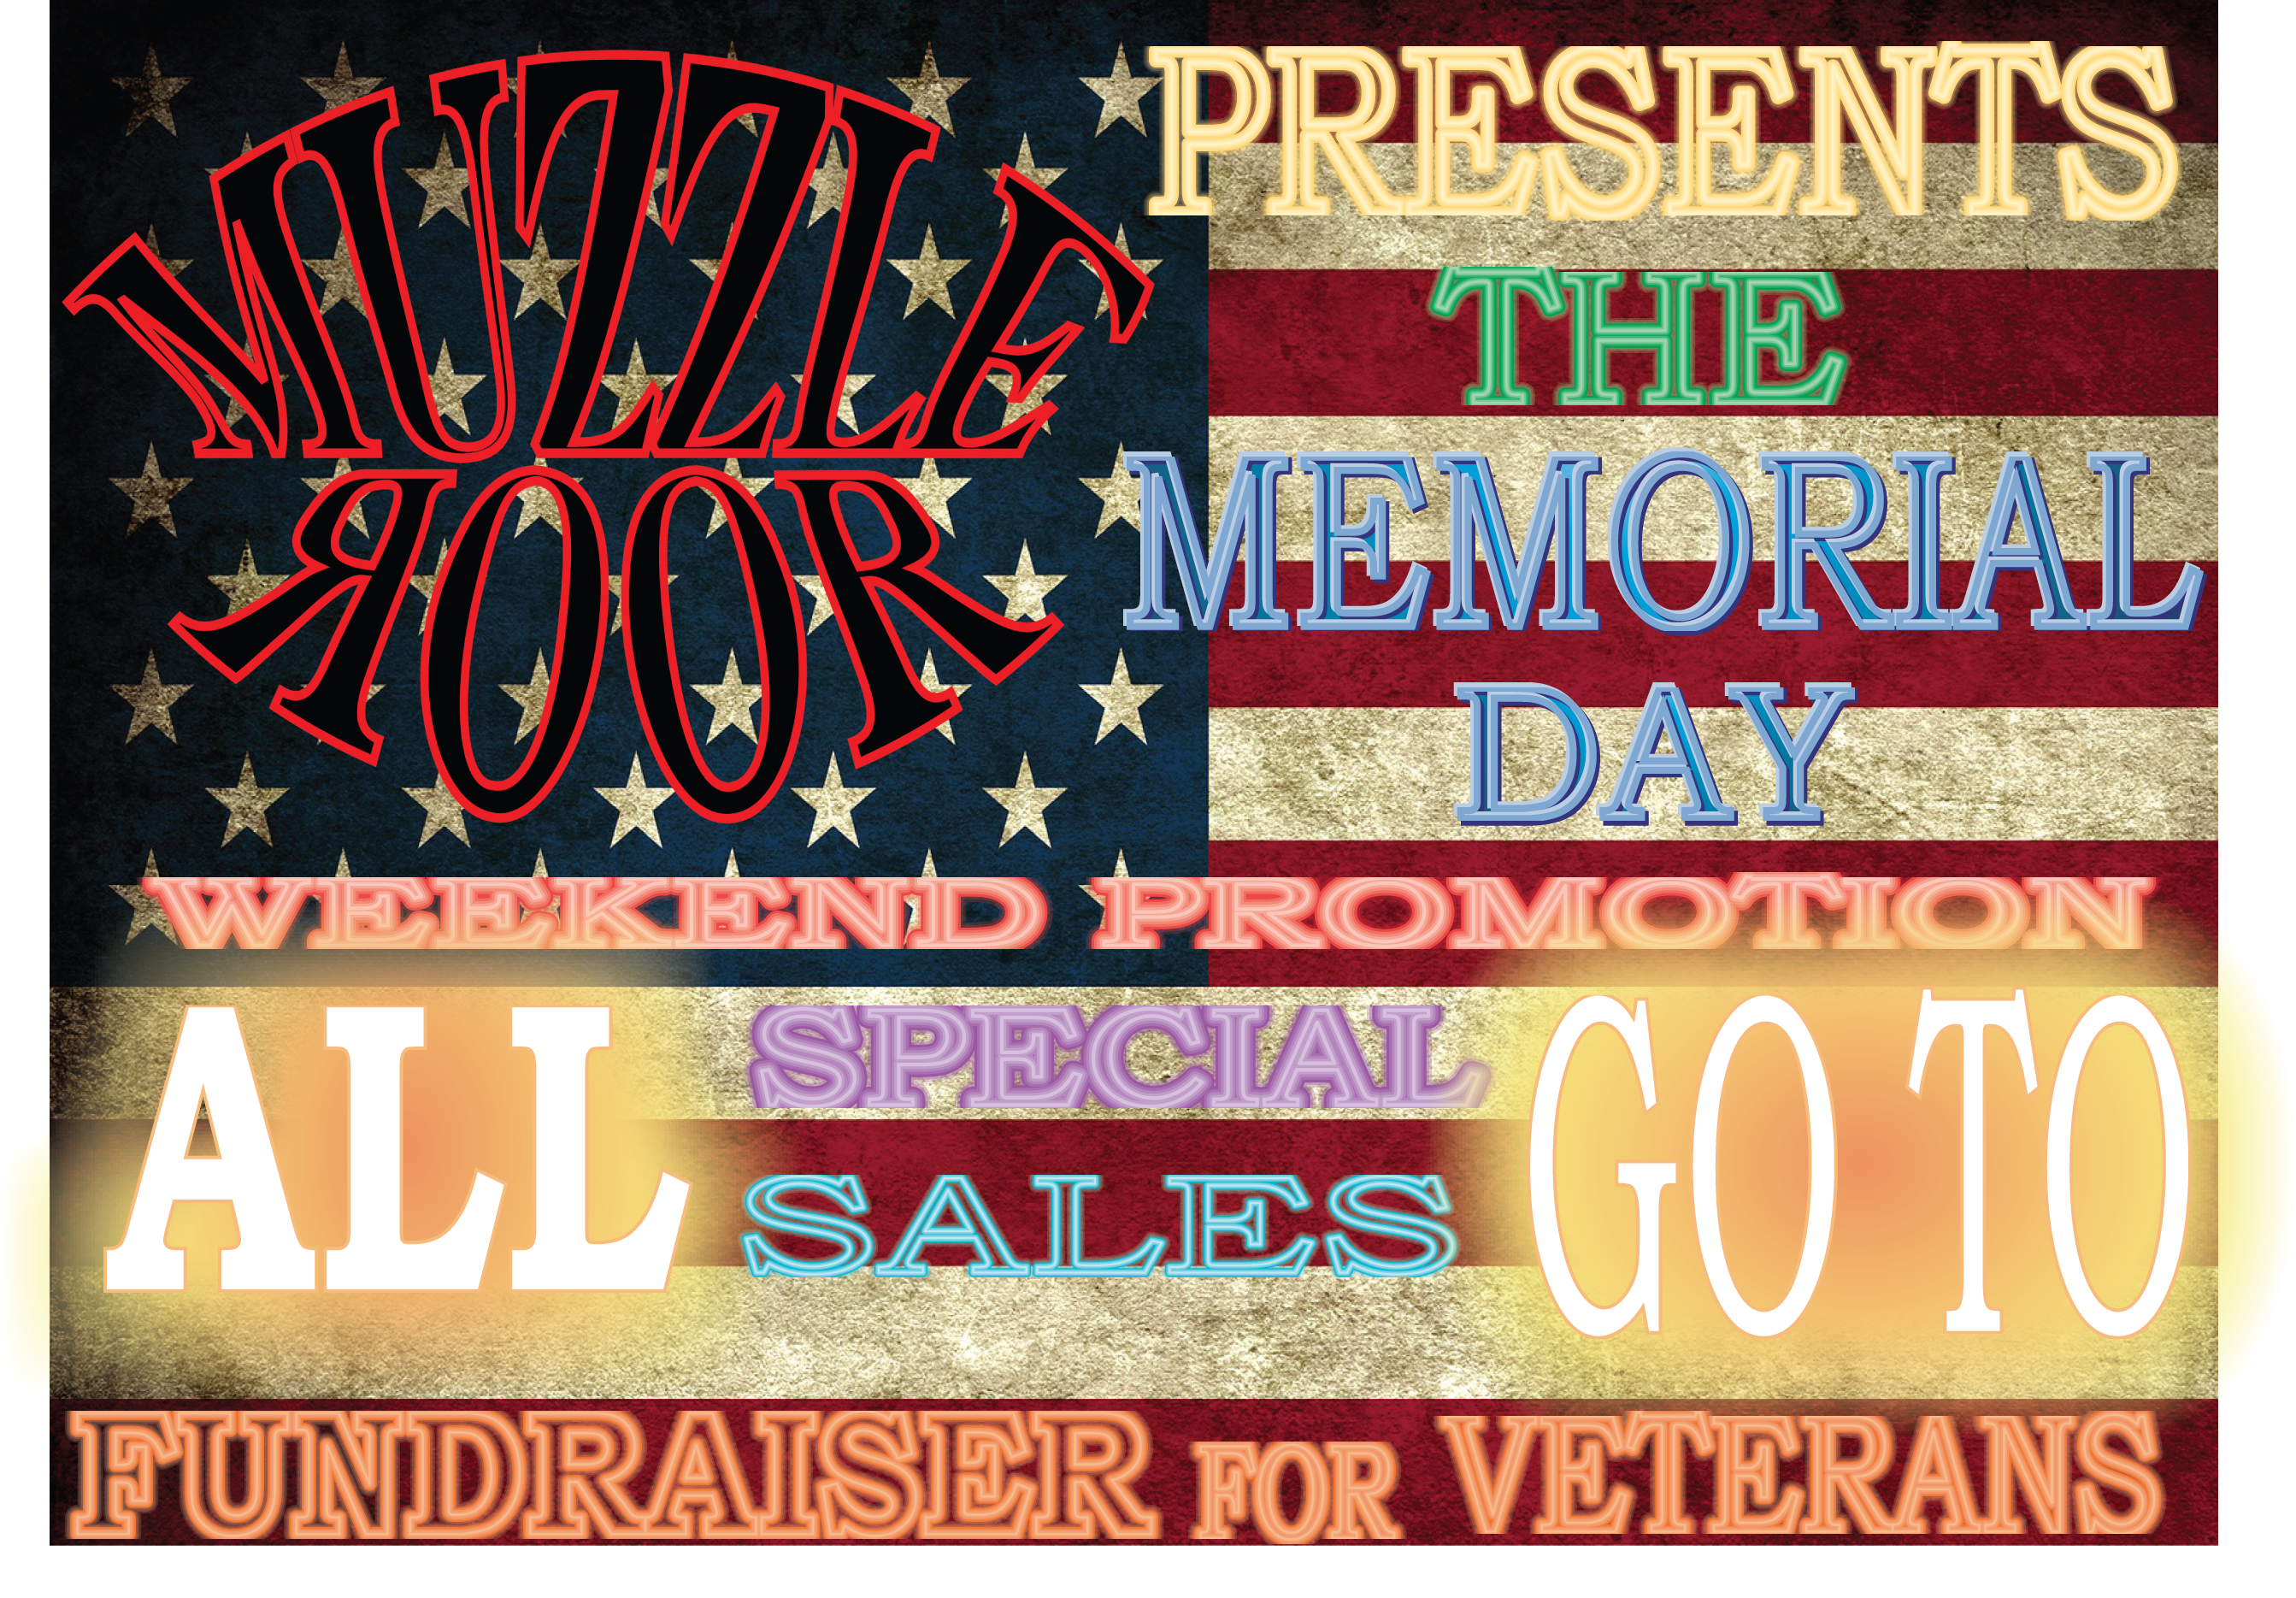 In honor of all who have served Muzzle RooR is having a ...